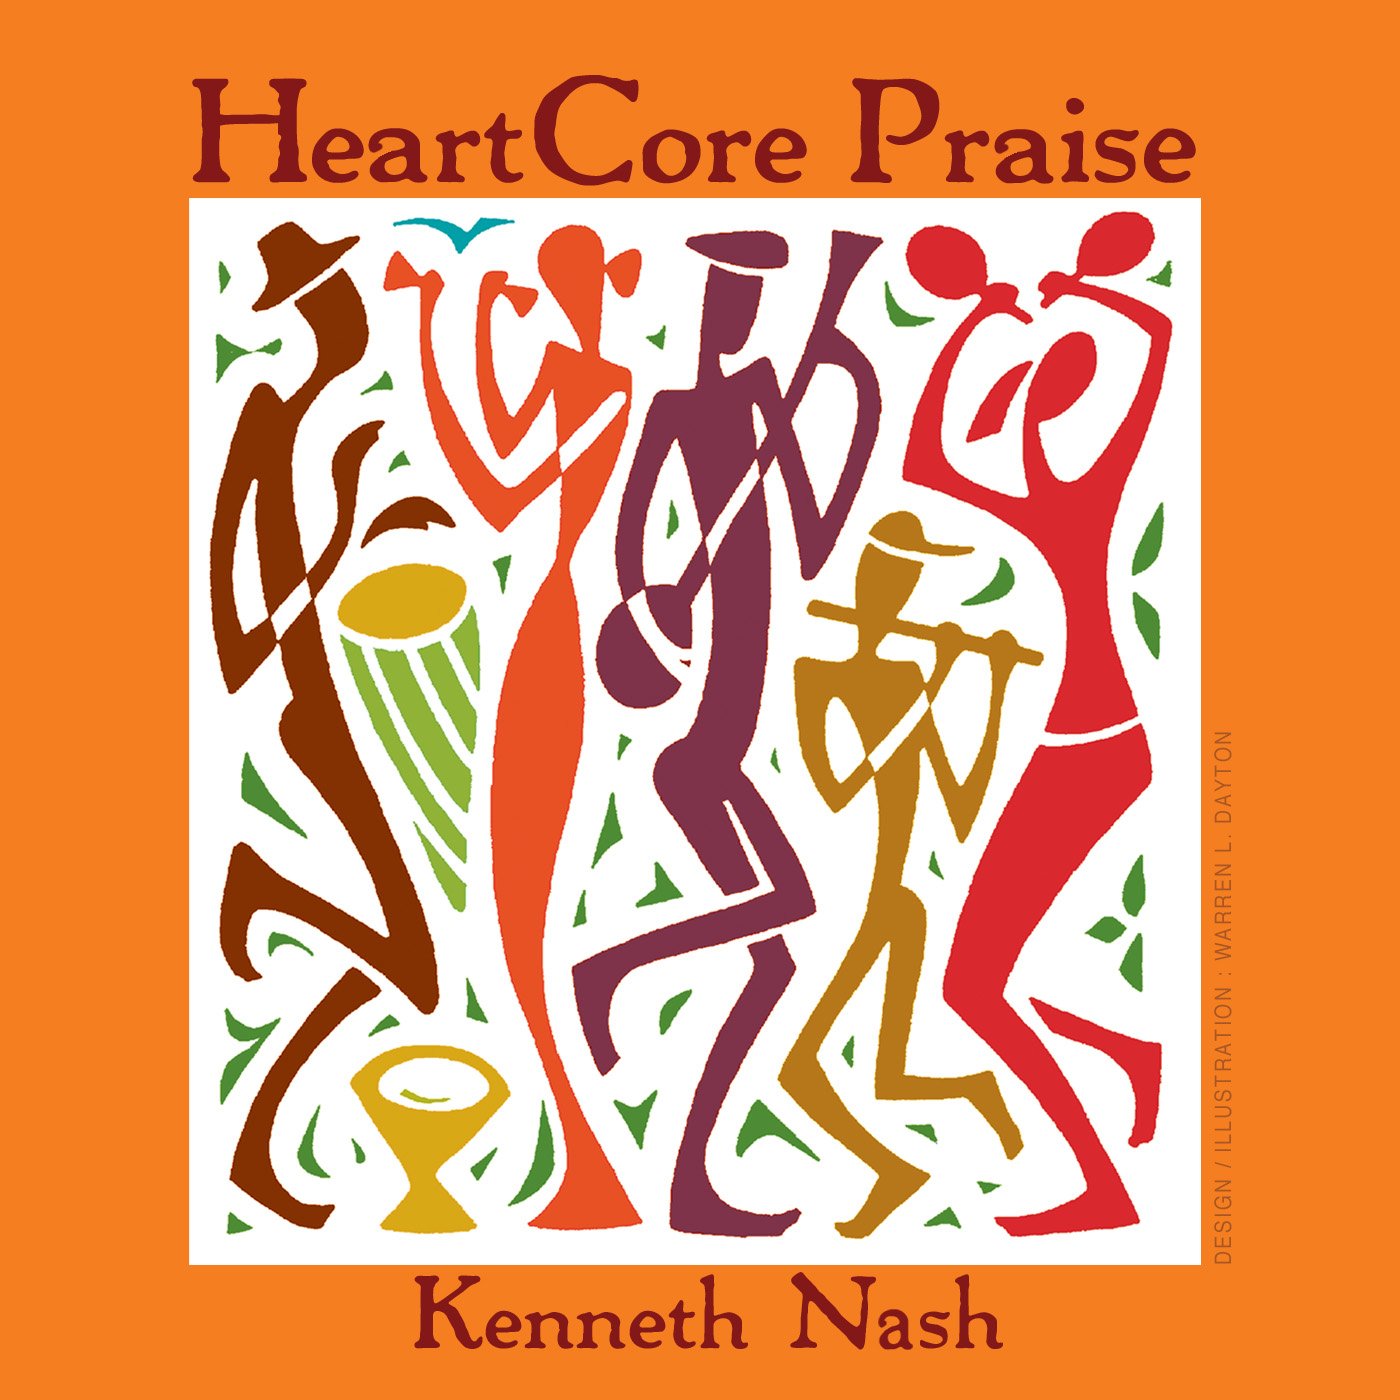 HeartCore Praise album cover